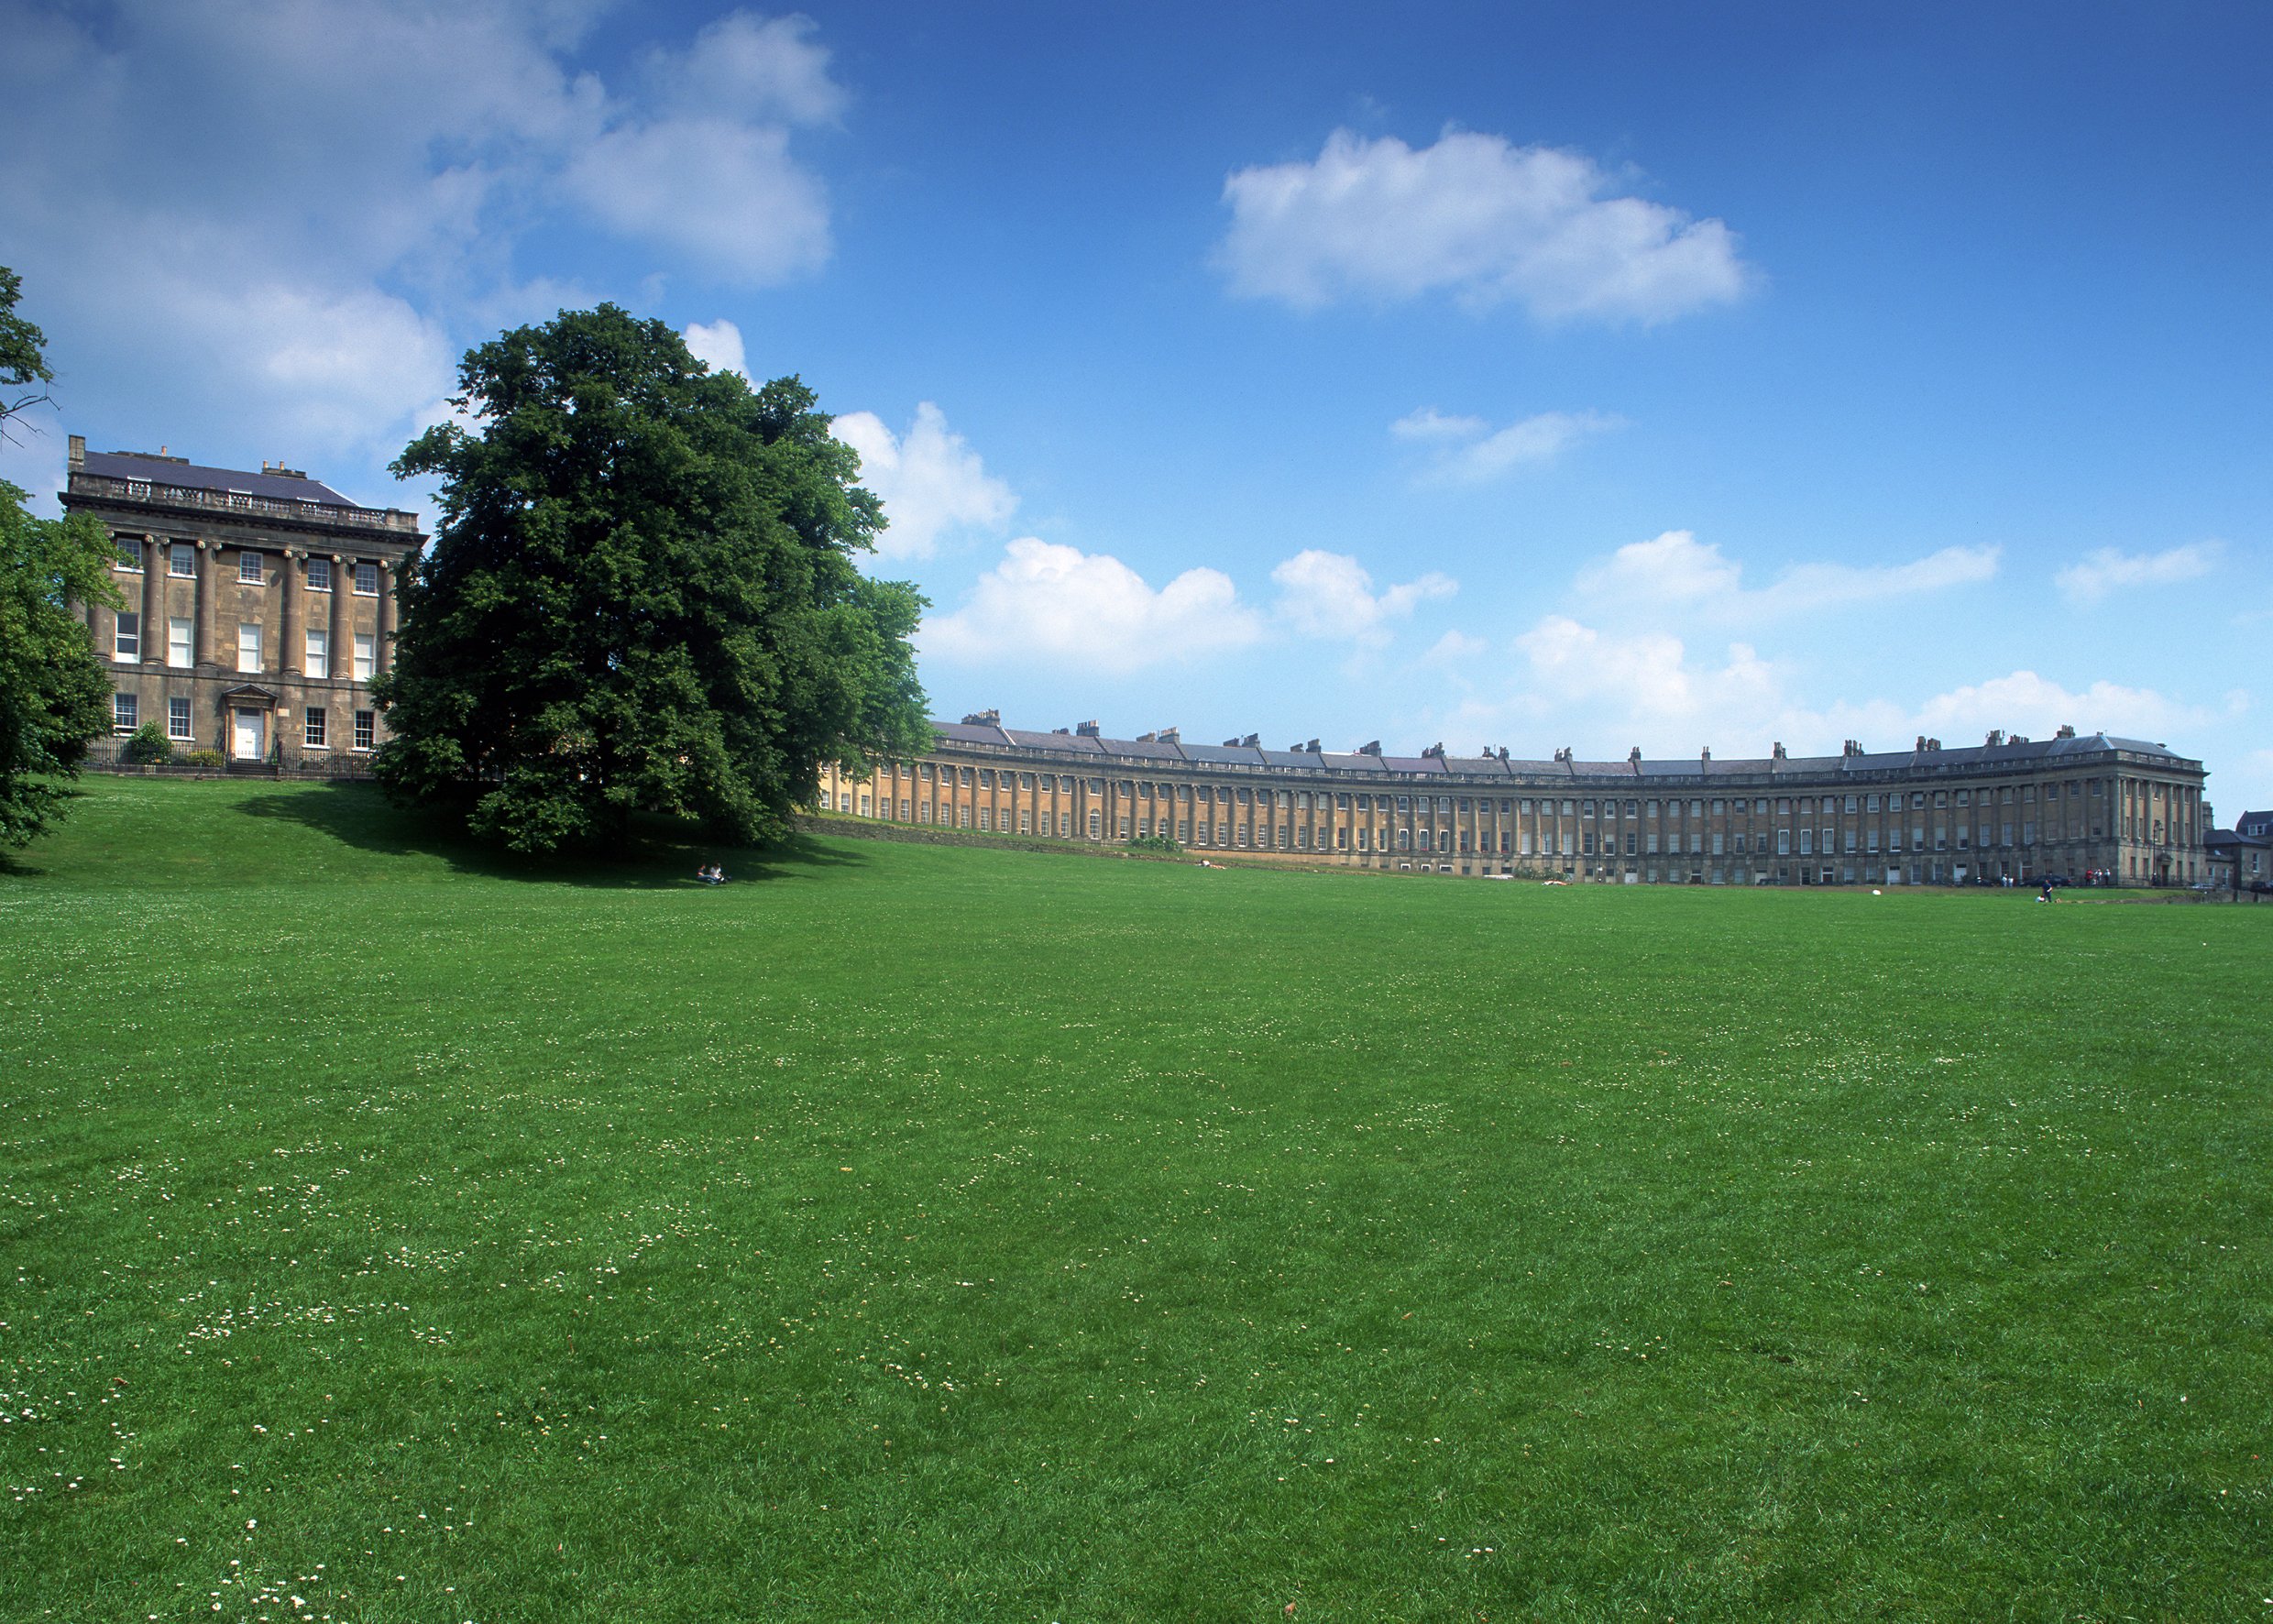 Royal_Crescent_Summer.jpg